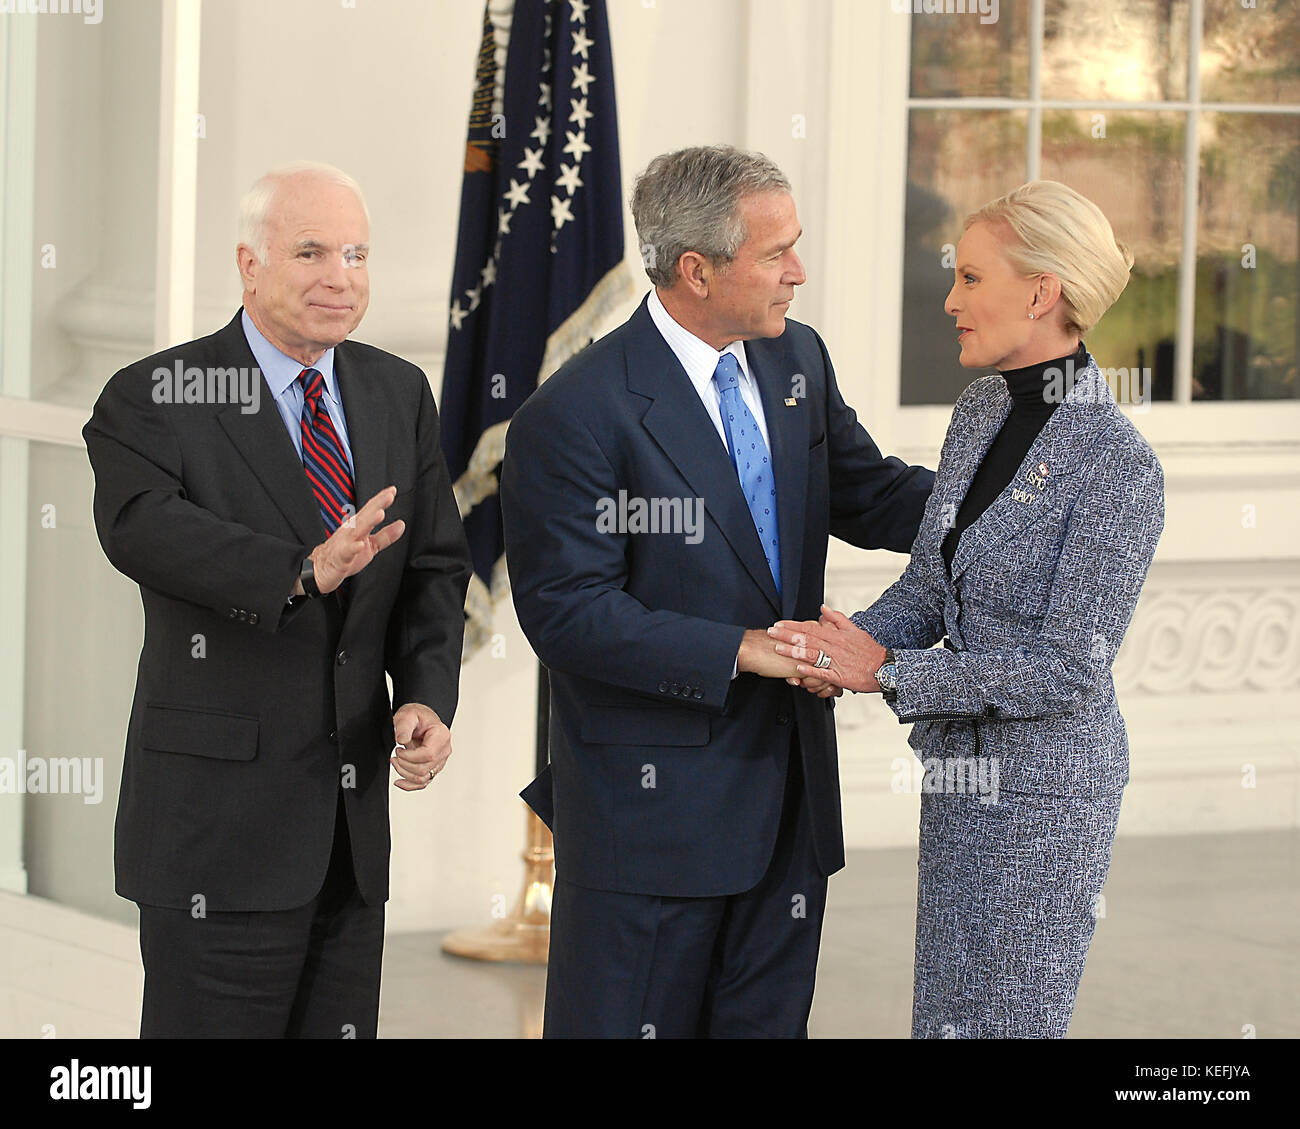 John Mccain Latest News Photos And Videos: March 5, 2008 -- United States Senator